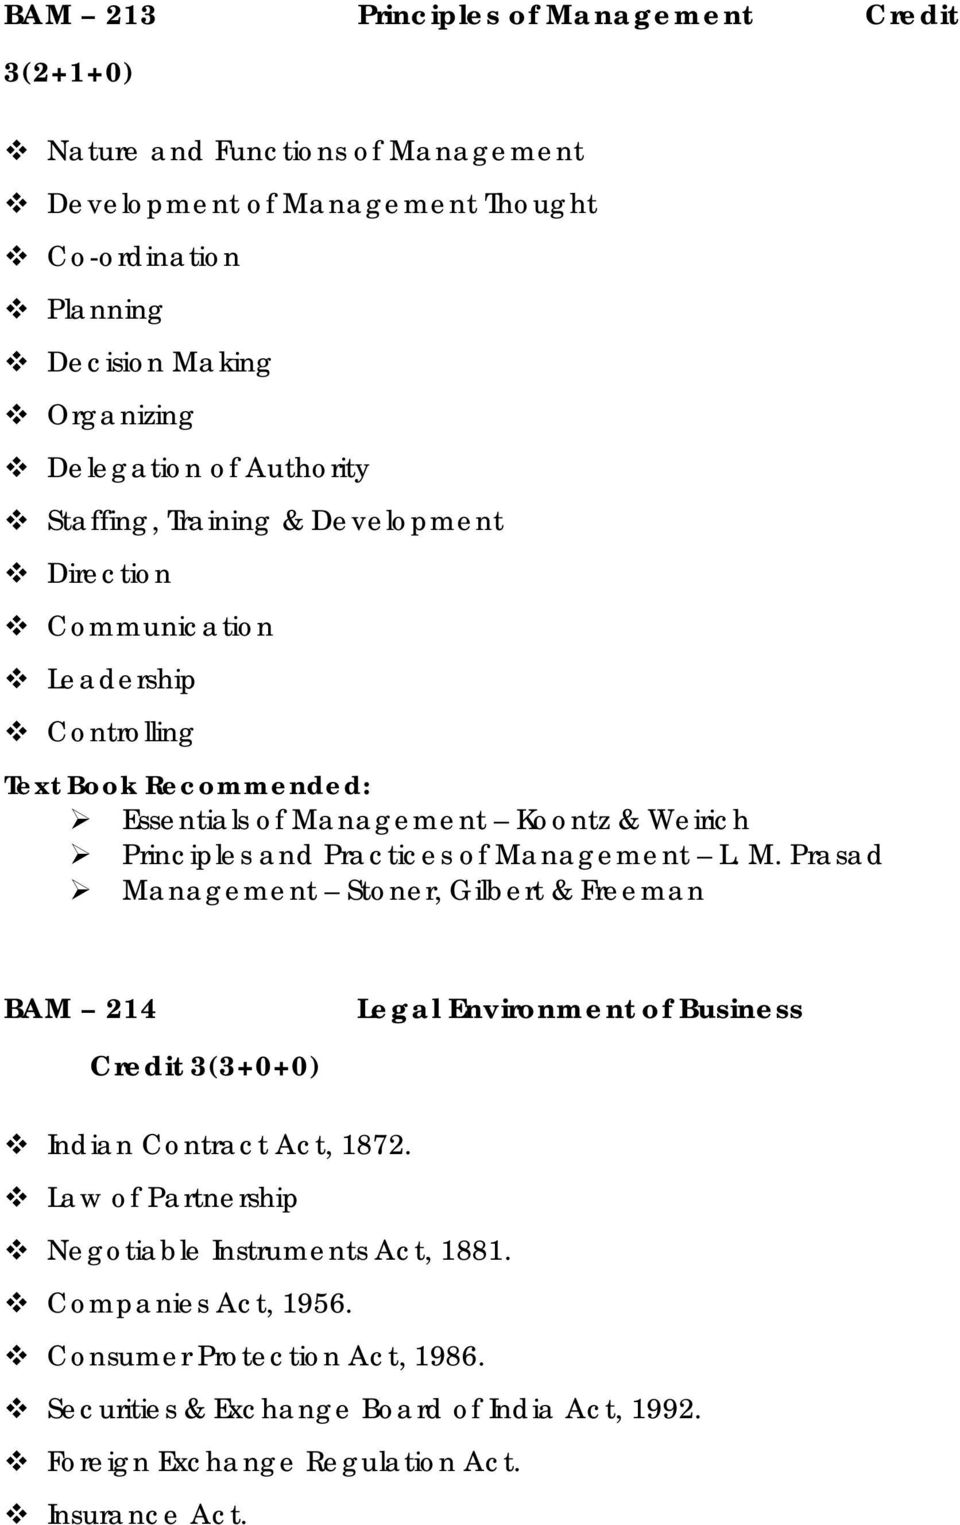 of Management L. M. Prasad Management Stoner, Gilbert & Freeman BAM 214 Credit 3(3+0+0) Legal Environment of Business Indian Contract Act, 1872.